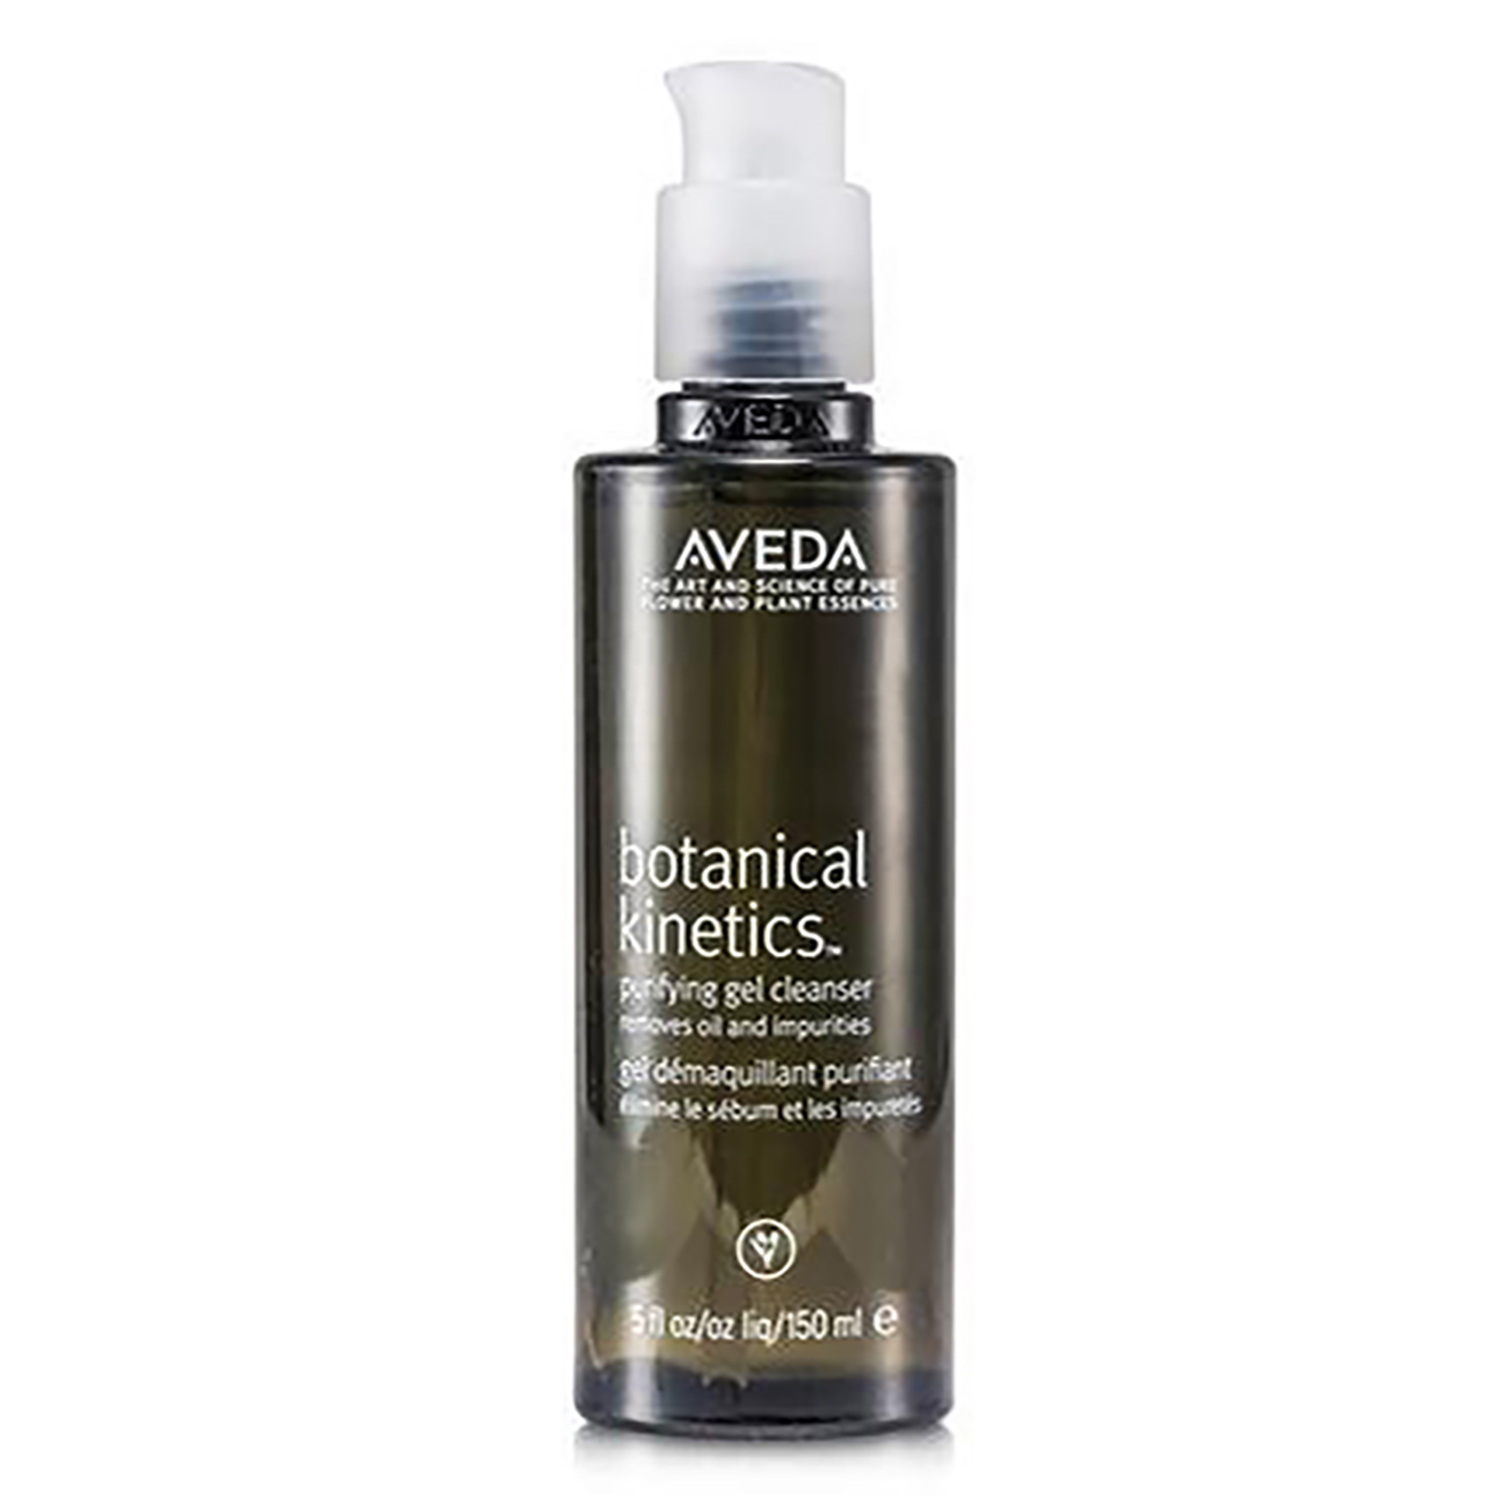 Botanical Kinetics Purifying Gel Cleanser by Aveda #10